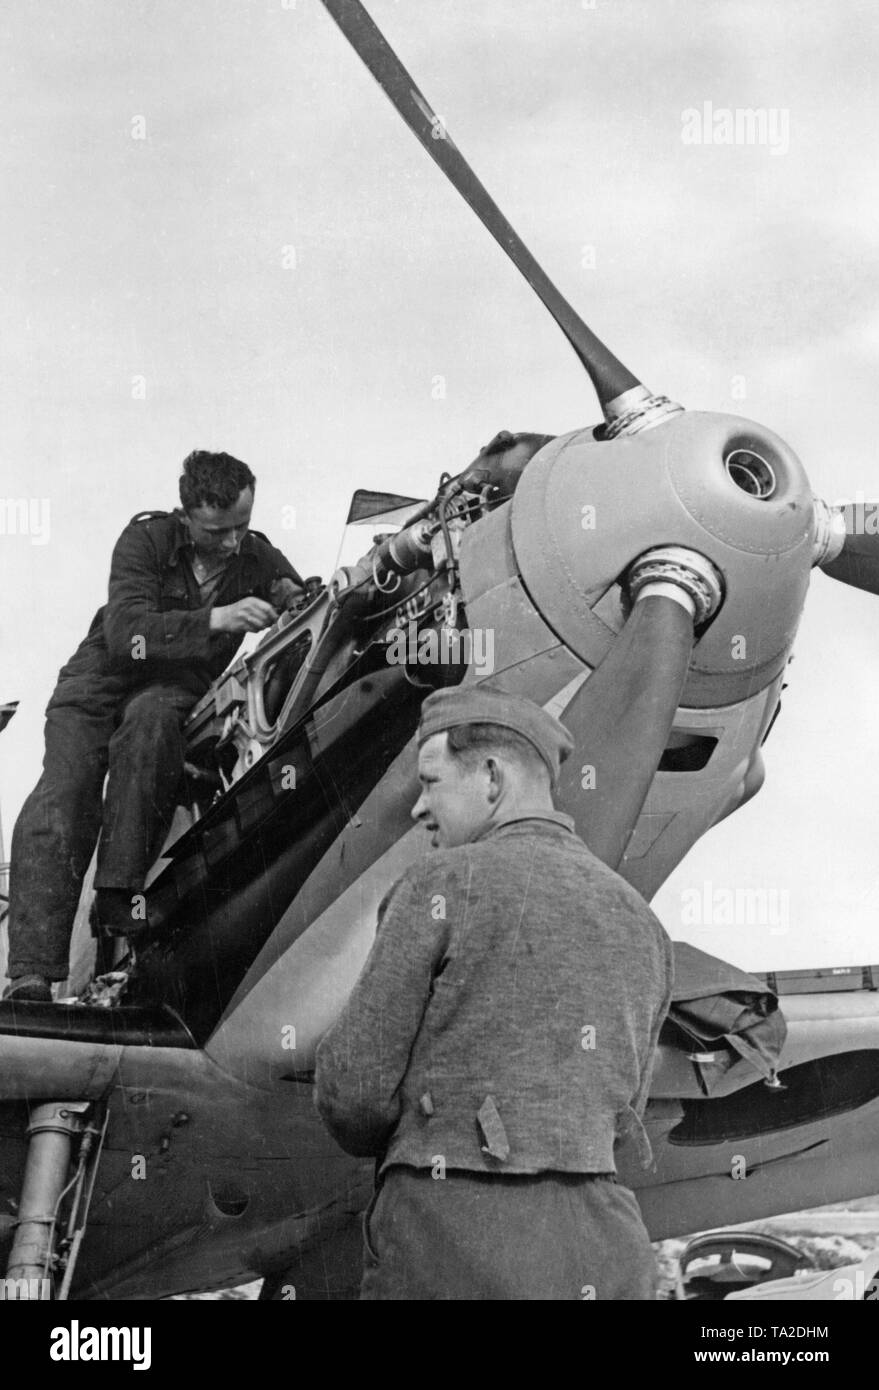 Photo of two mechanics of the Luftwaffe while repairing the engine of a Messerschmitt Bf 109 B-series at an airfield in Spain. Here, the muzzle of the machine gun in the hollow propeller nose. - Stock Image